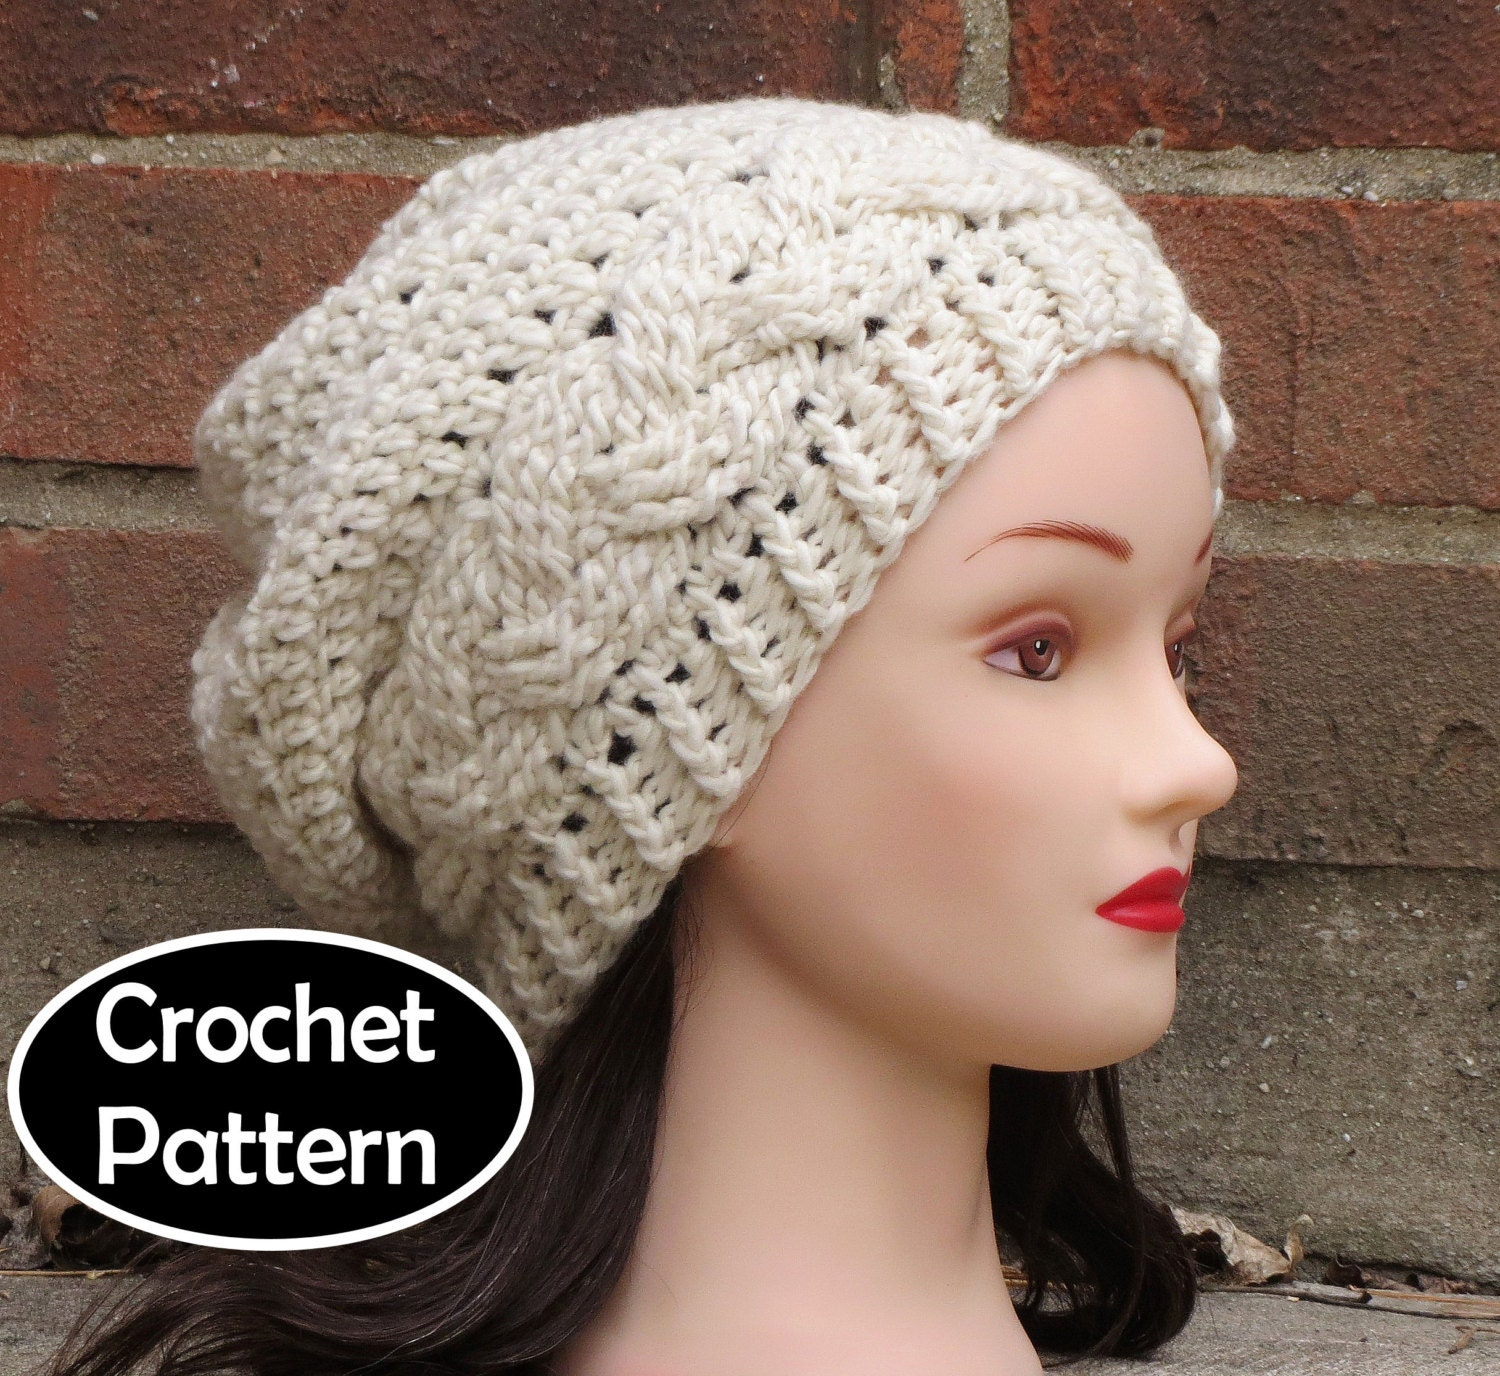 Crochet Hat Pattern Download : CROCHET HAT PATTERN Instant Pdf Download Julia Cabled